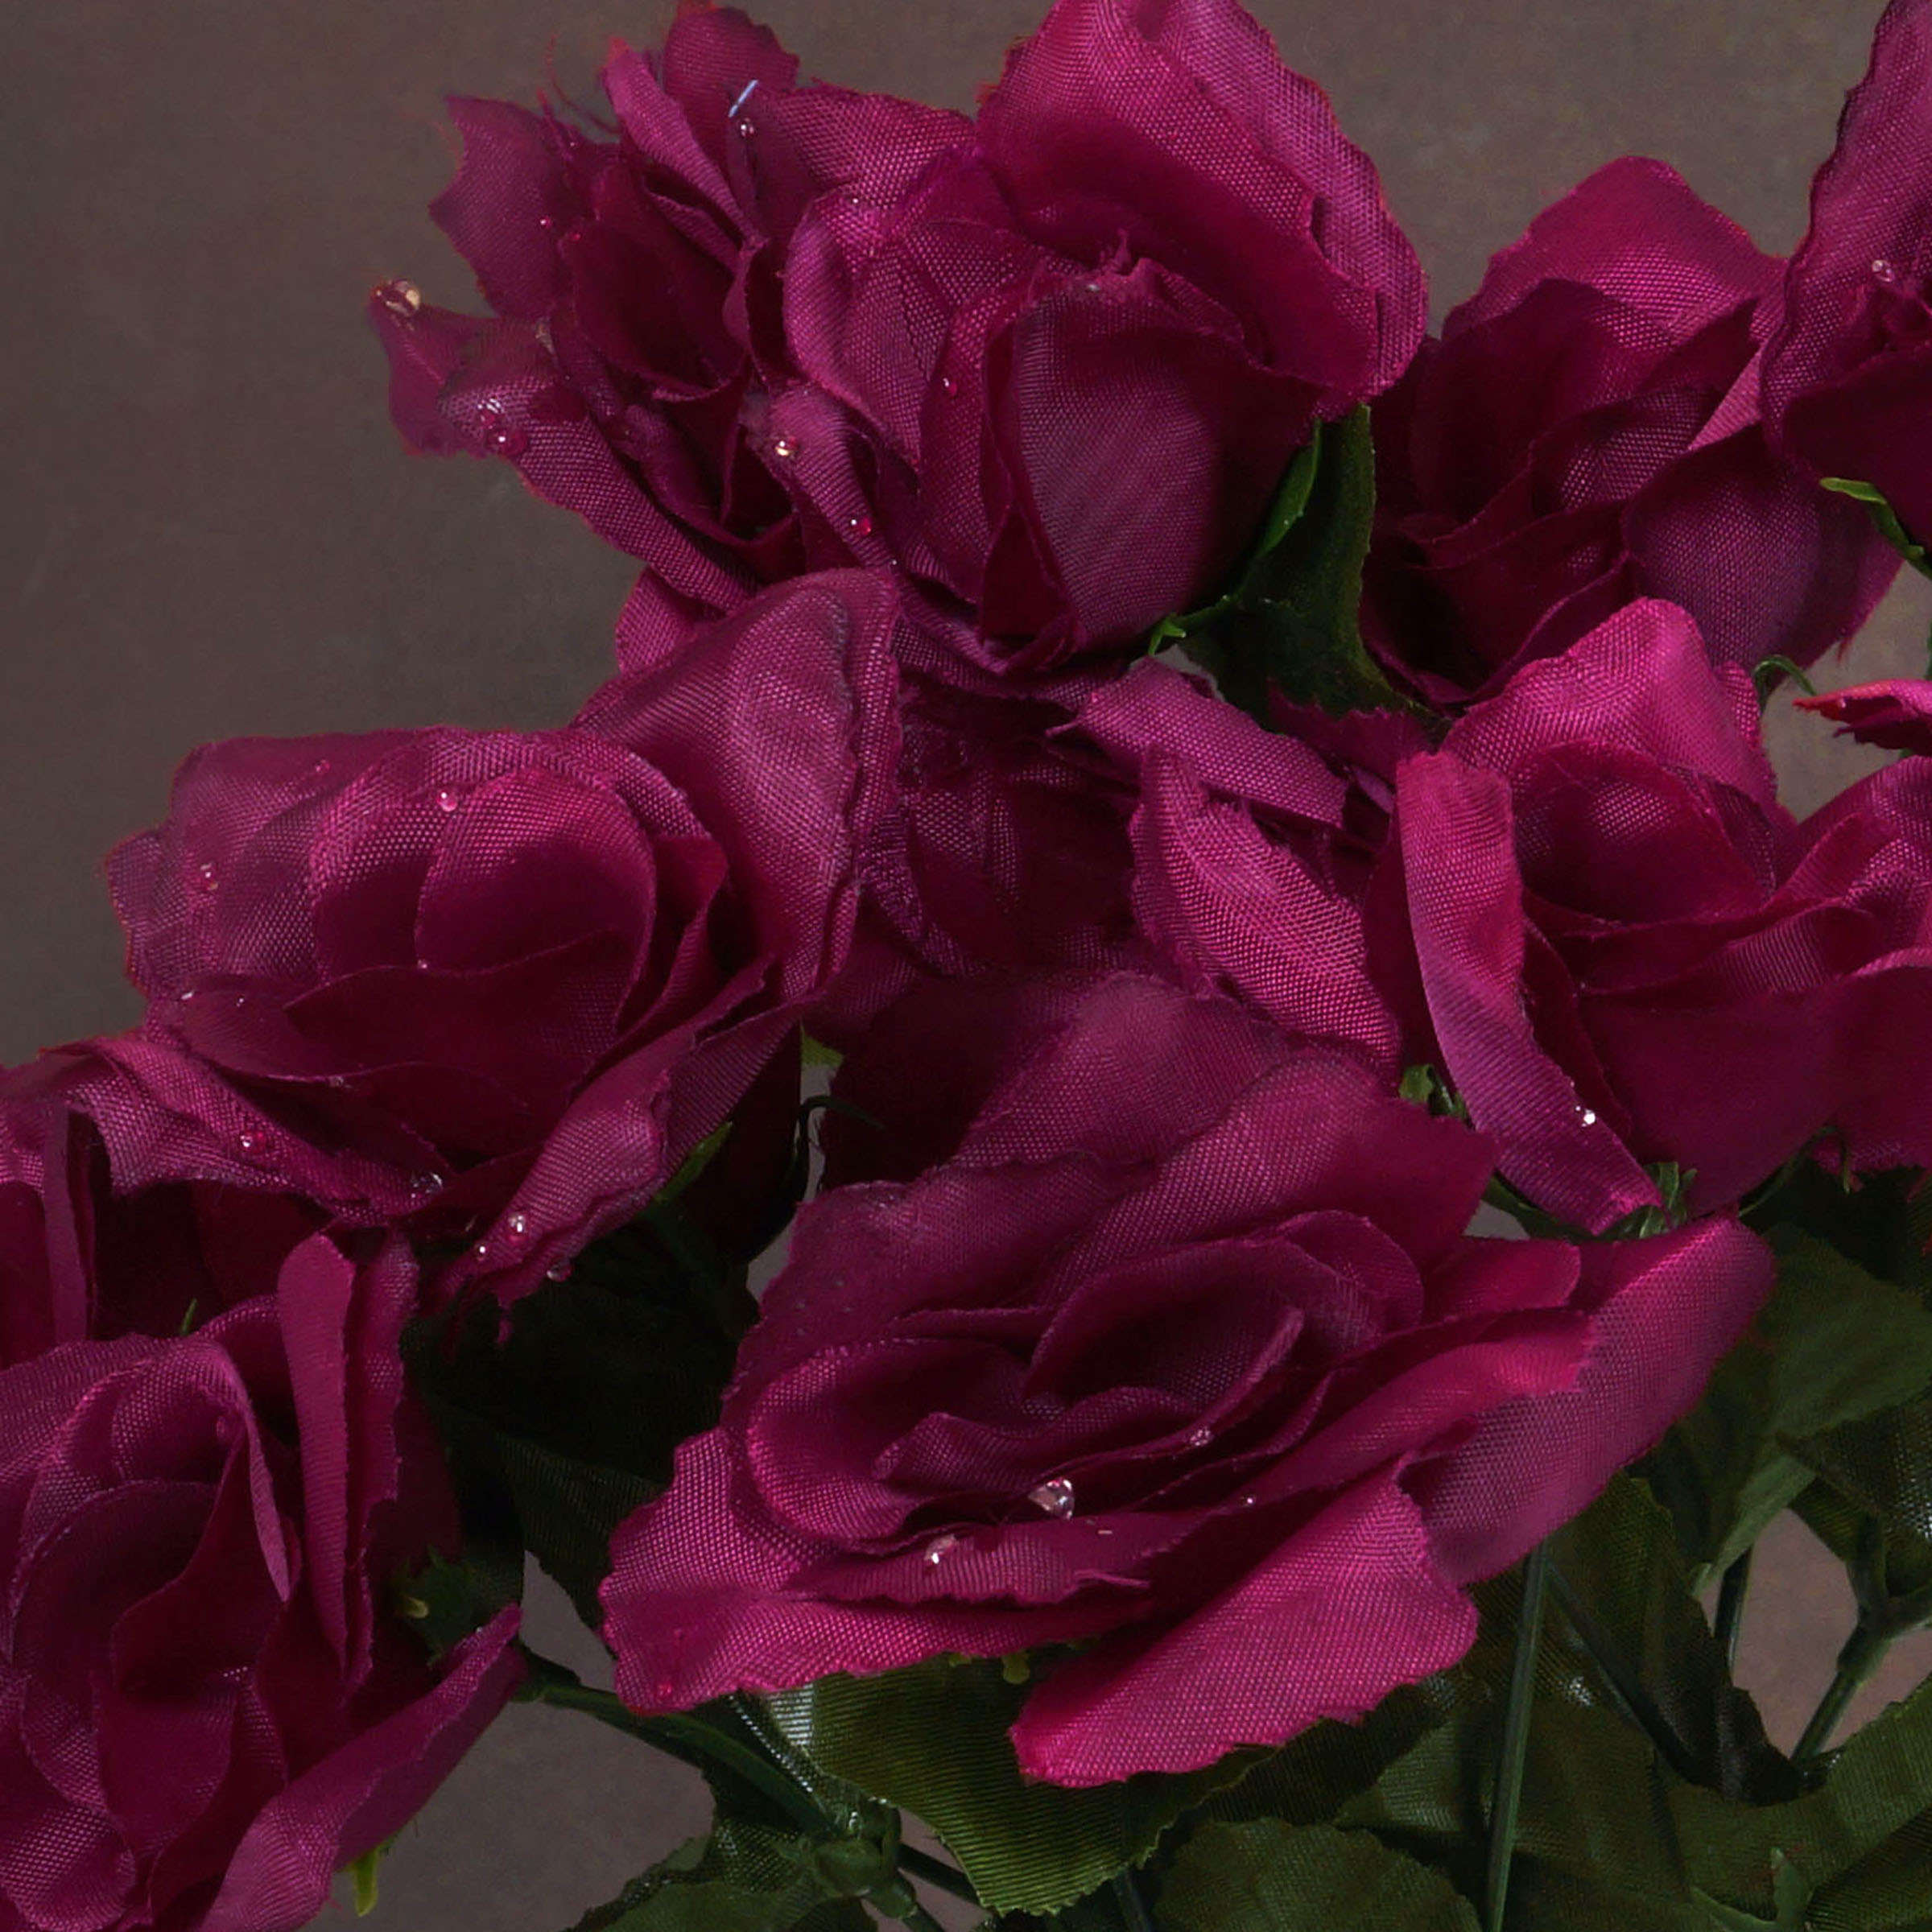 252 silk open roses wedding wholesale discounted flowers bouquets 252 silk open roses wedding wholesale discounted flowers mightylinksfo